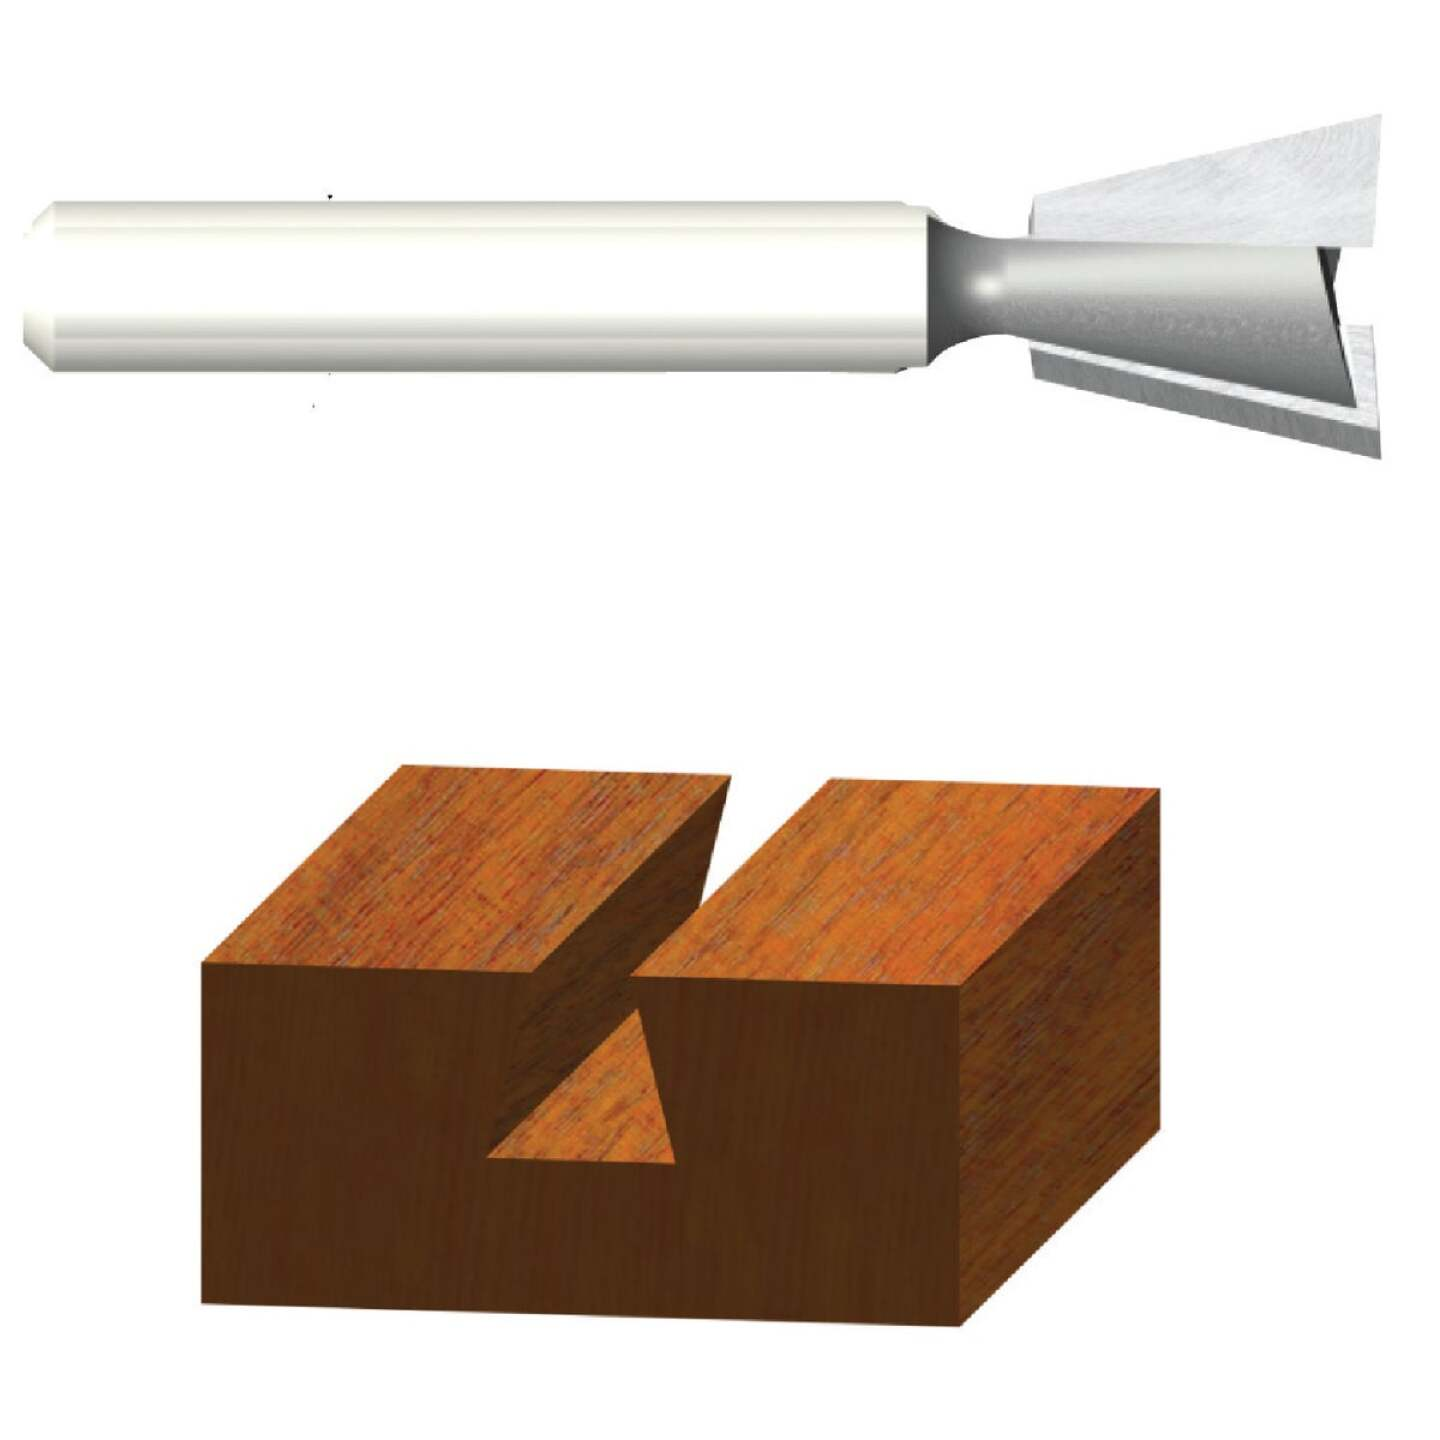 Vermont American Carbide Dovetail 9/16 In. Dovetail Bit Image 1